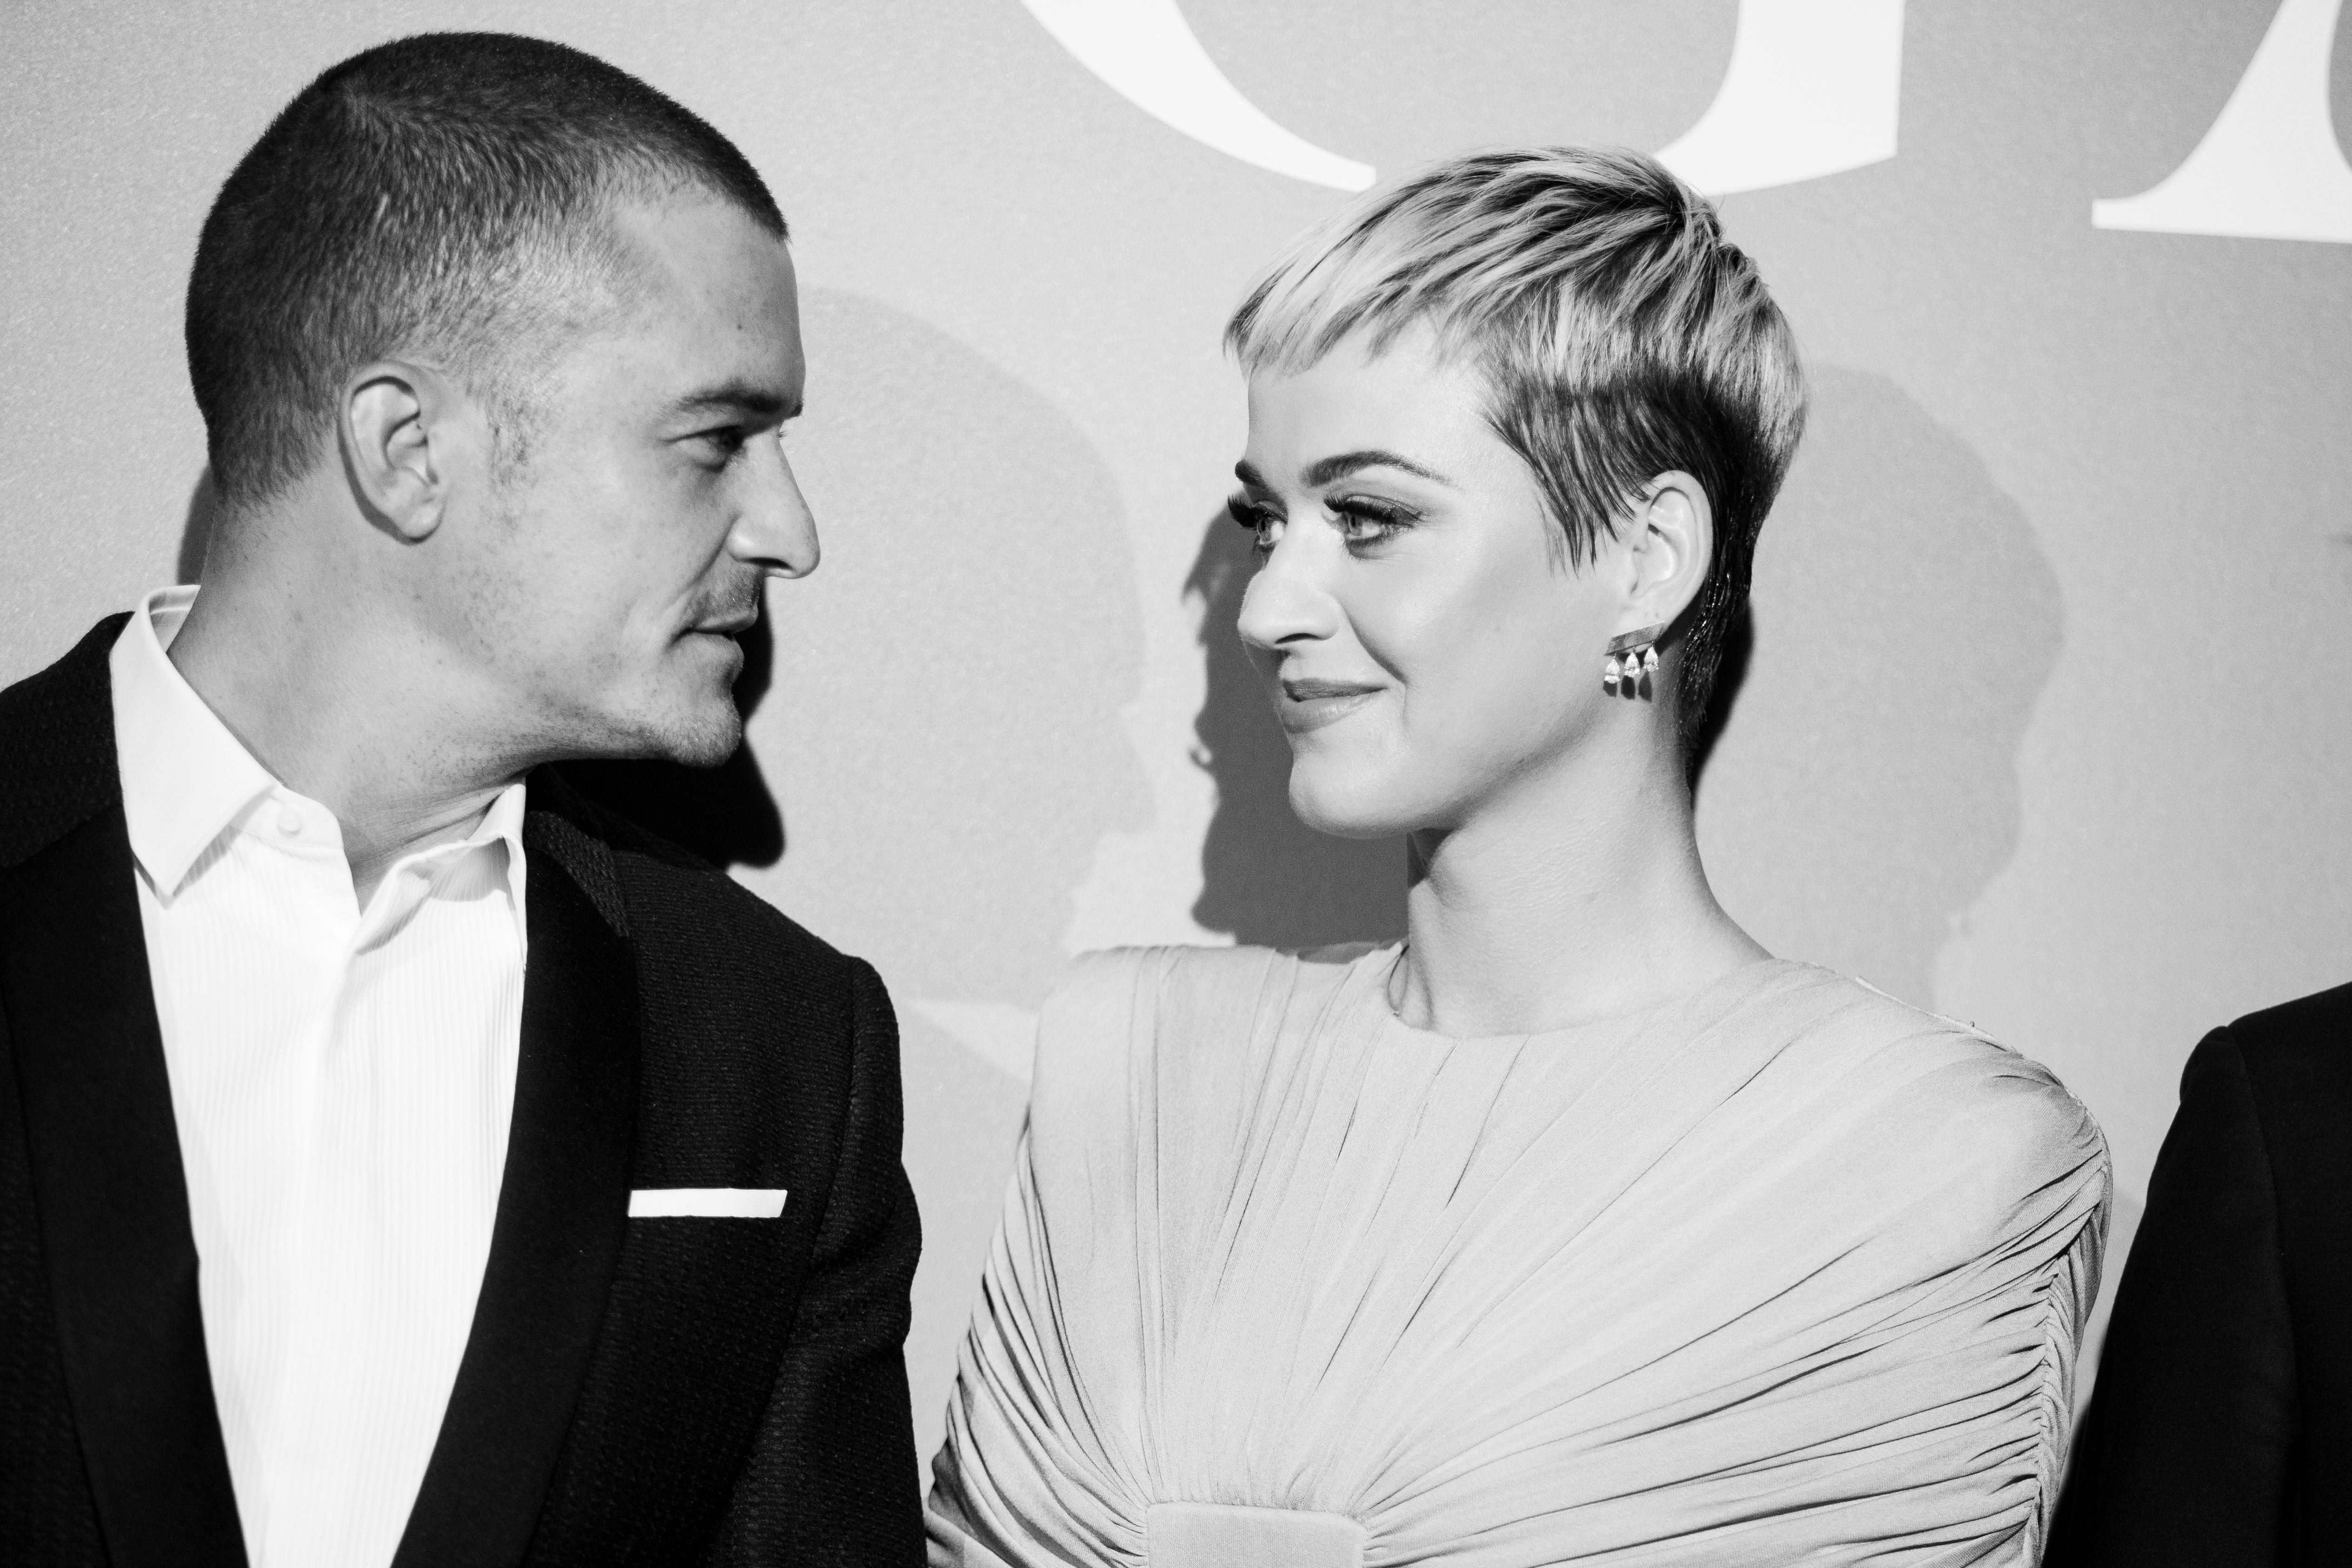 Orlando Bloom and Katy Perry attend Gala for the Global Ocean hosted by H.S.H. Prince Albert II of Monaco / Getty Images